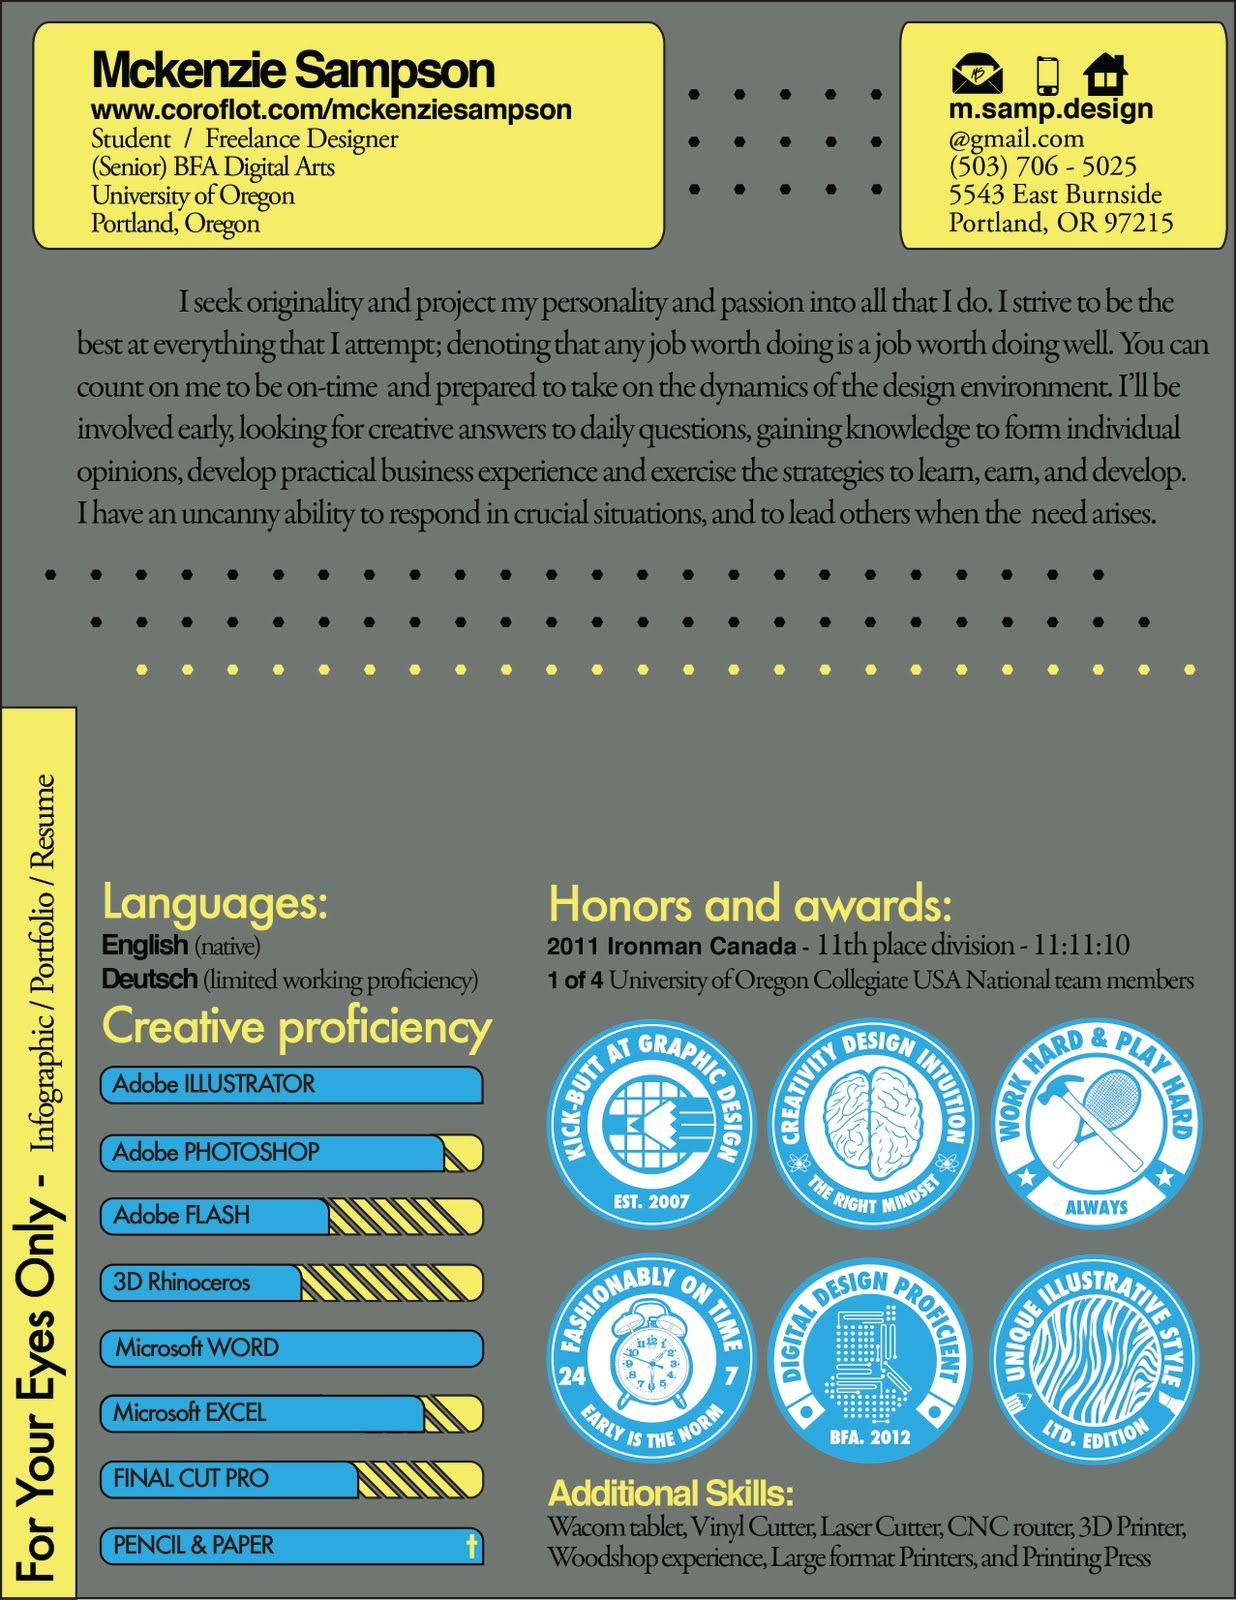 High Quality Infographic Resume: Graphic Design Student. Visually, This Is Amazing. From  A Hiring